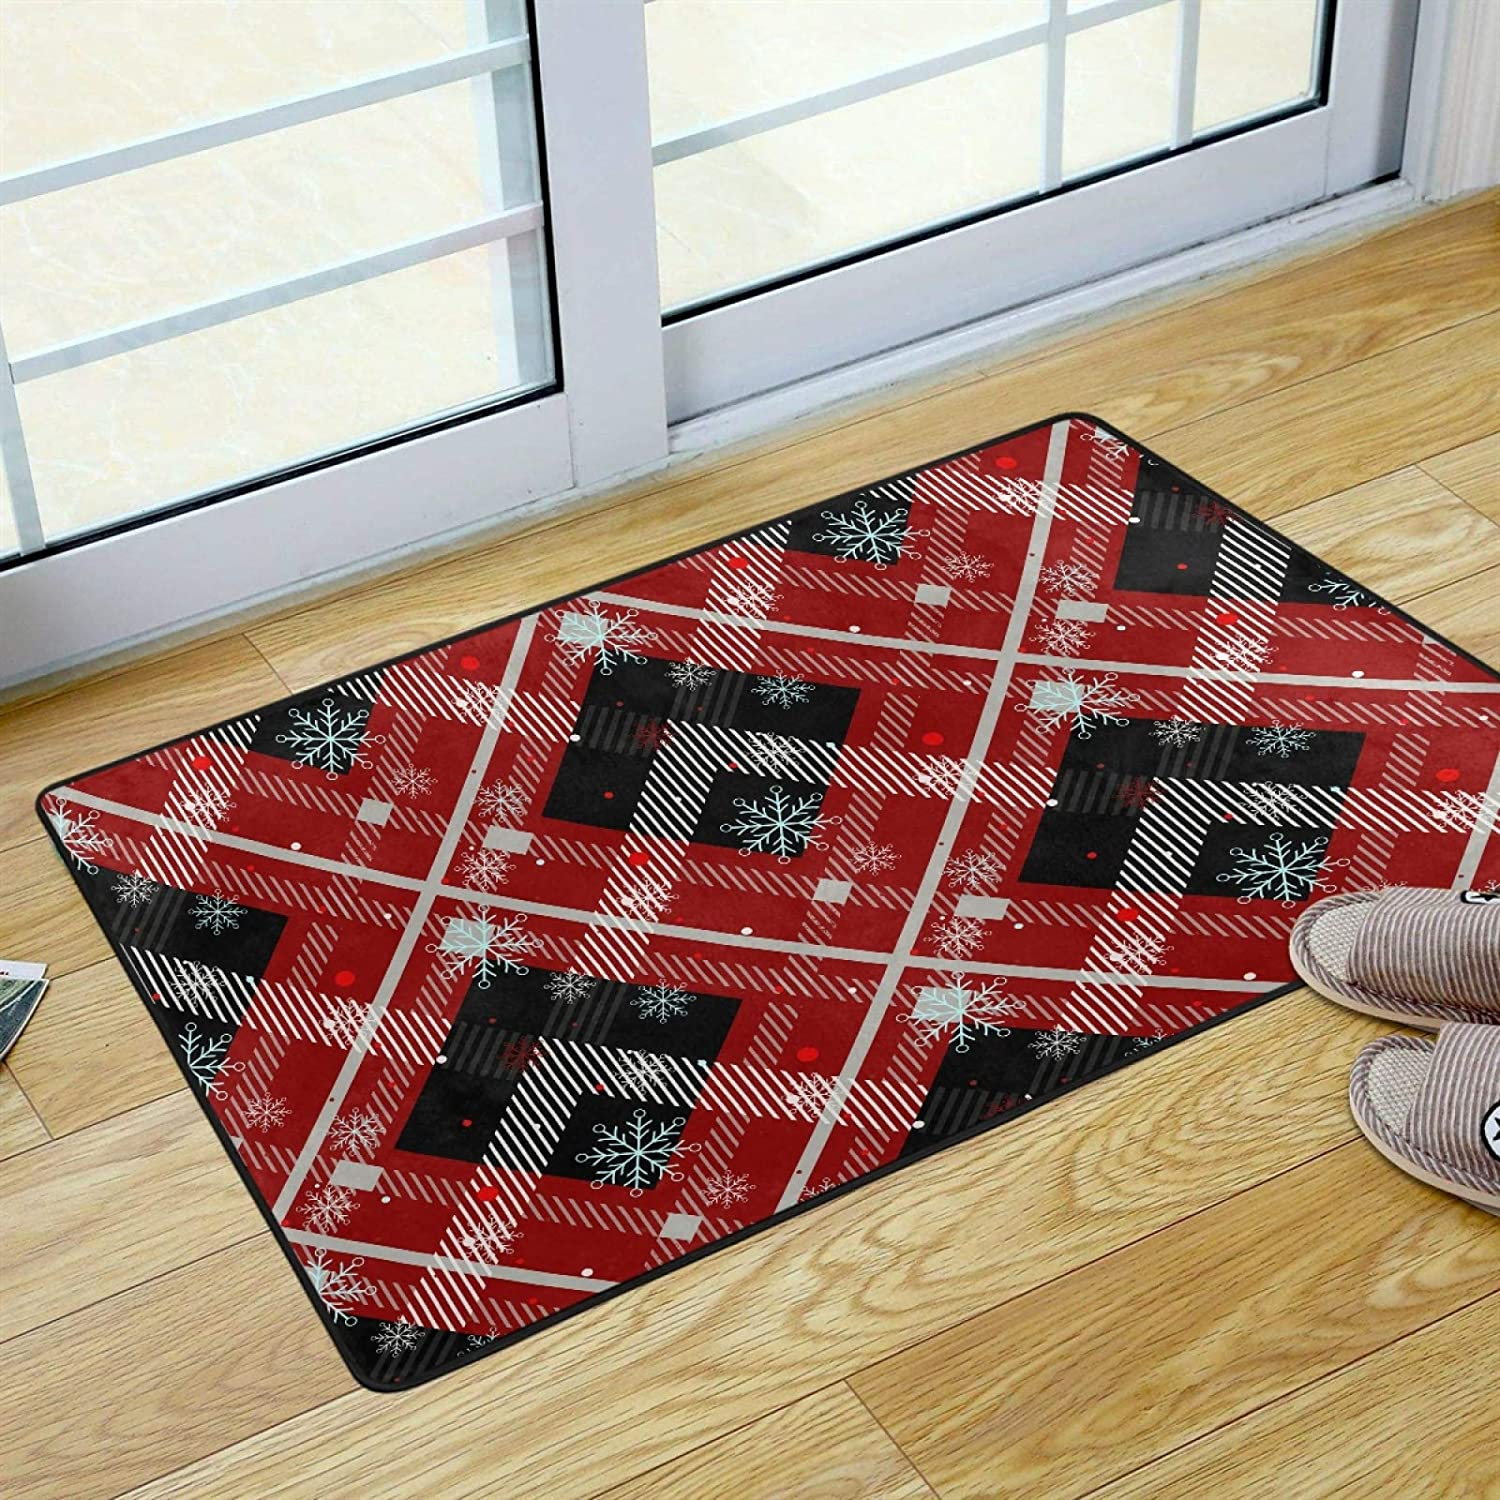 UMIRIKO Area Rug for Bathroom Merry Christmas Snowflake Red Black Buffalo Check Plaid Indoor Door Mat Washable Rug for Bedroom Kitchen Porch Laundry Living Room Carpet 36 x 24 in 2021053